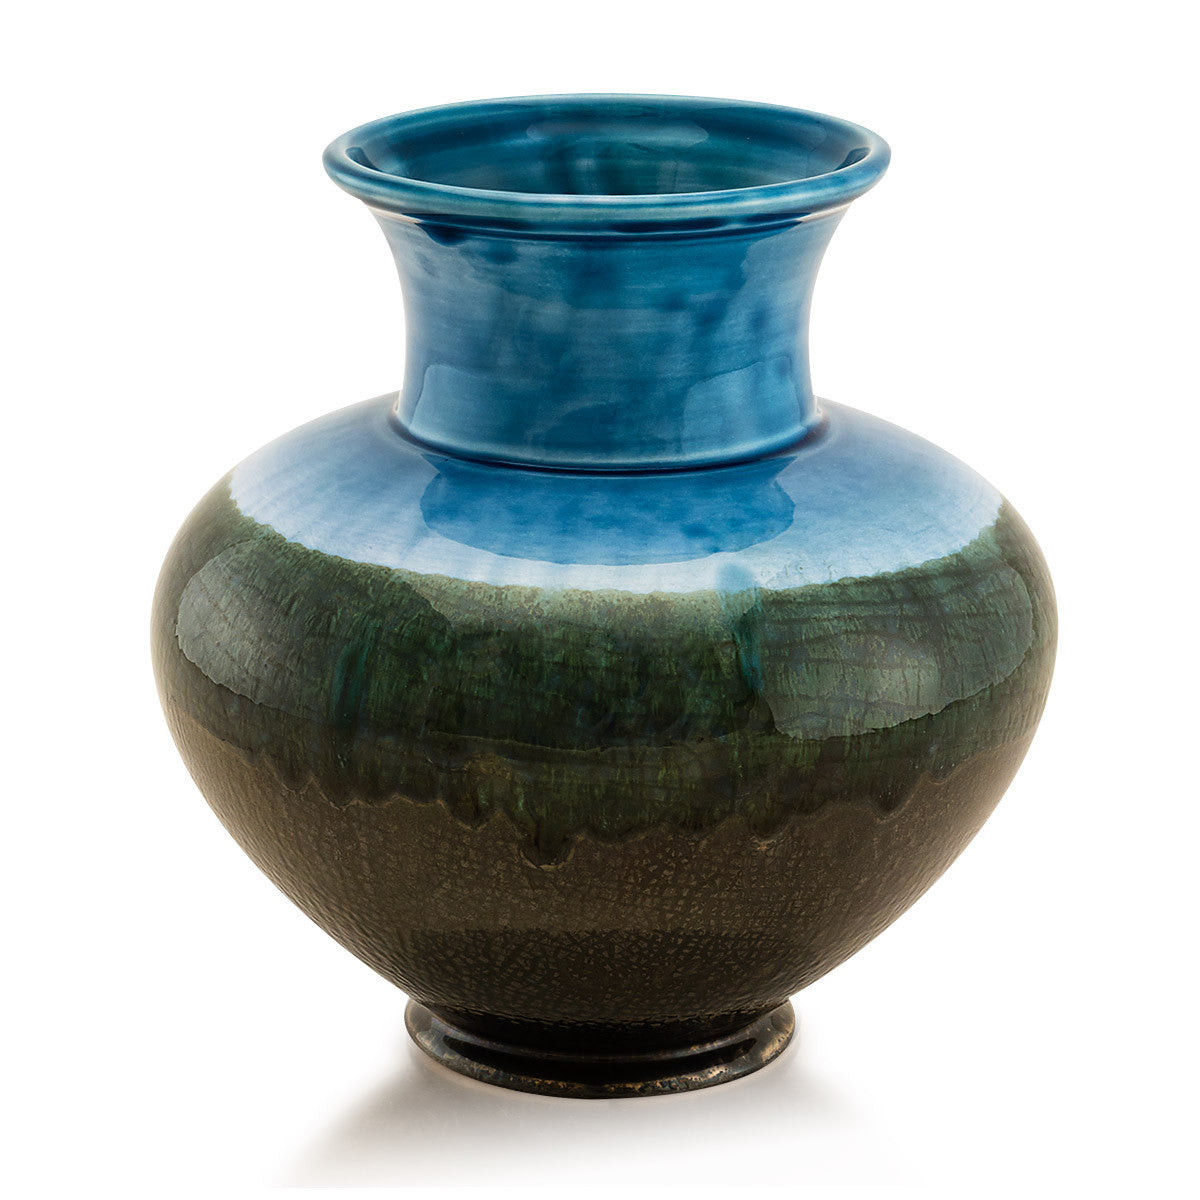 Round vases-blue color-Pottery supplies-Modern design